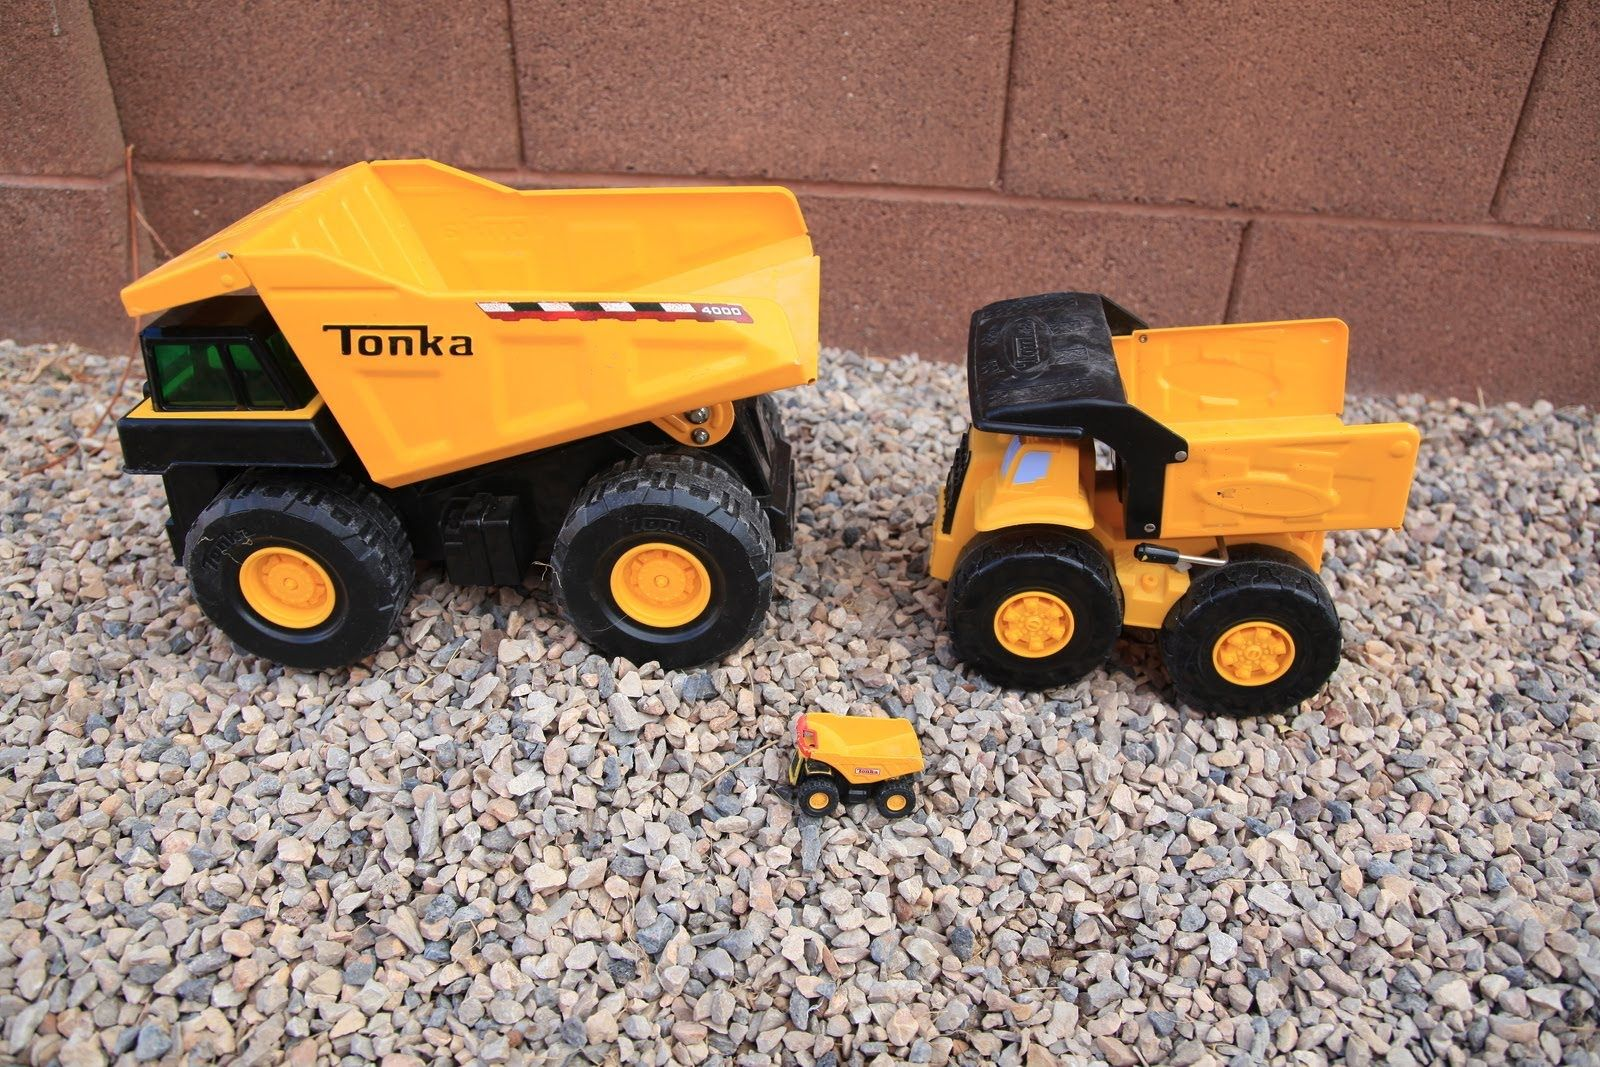 BIG Tonka Metal Toy Dump Trucks Contruction Yard Excavator.